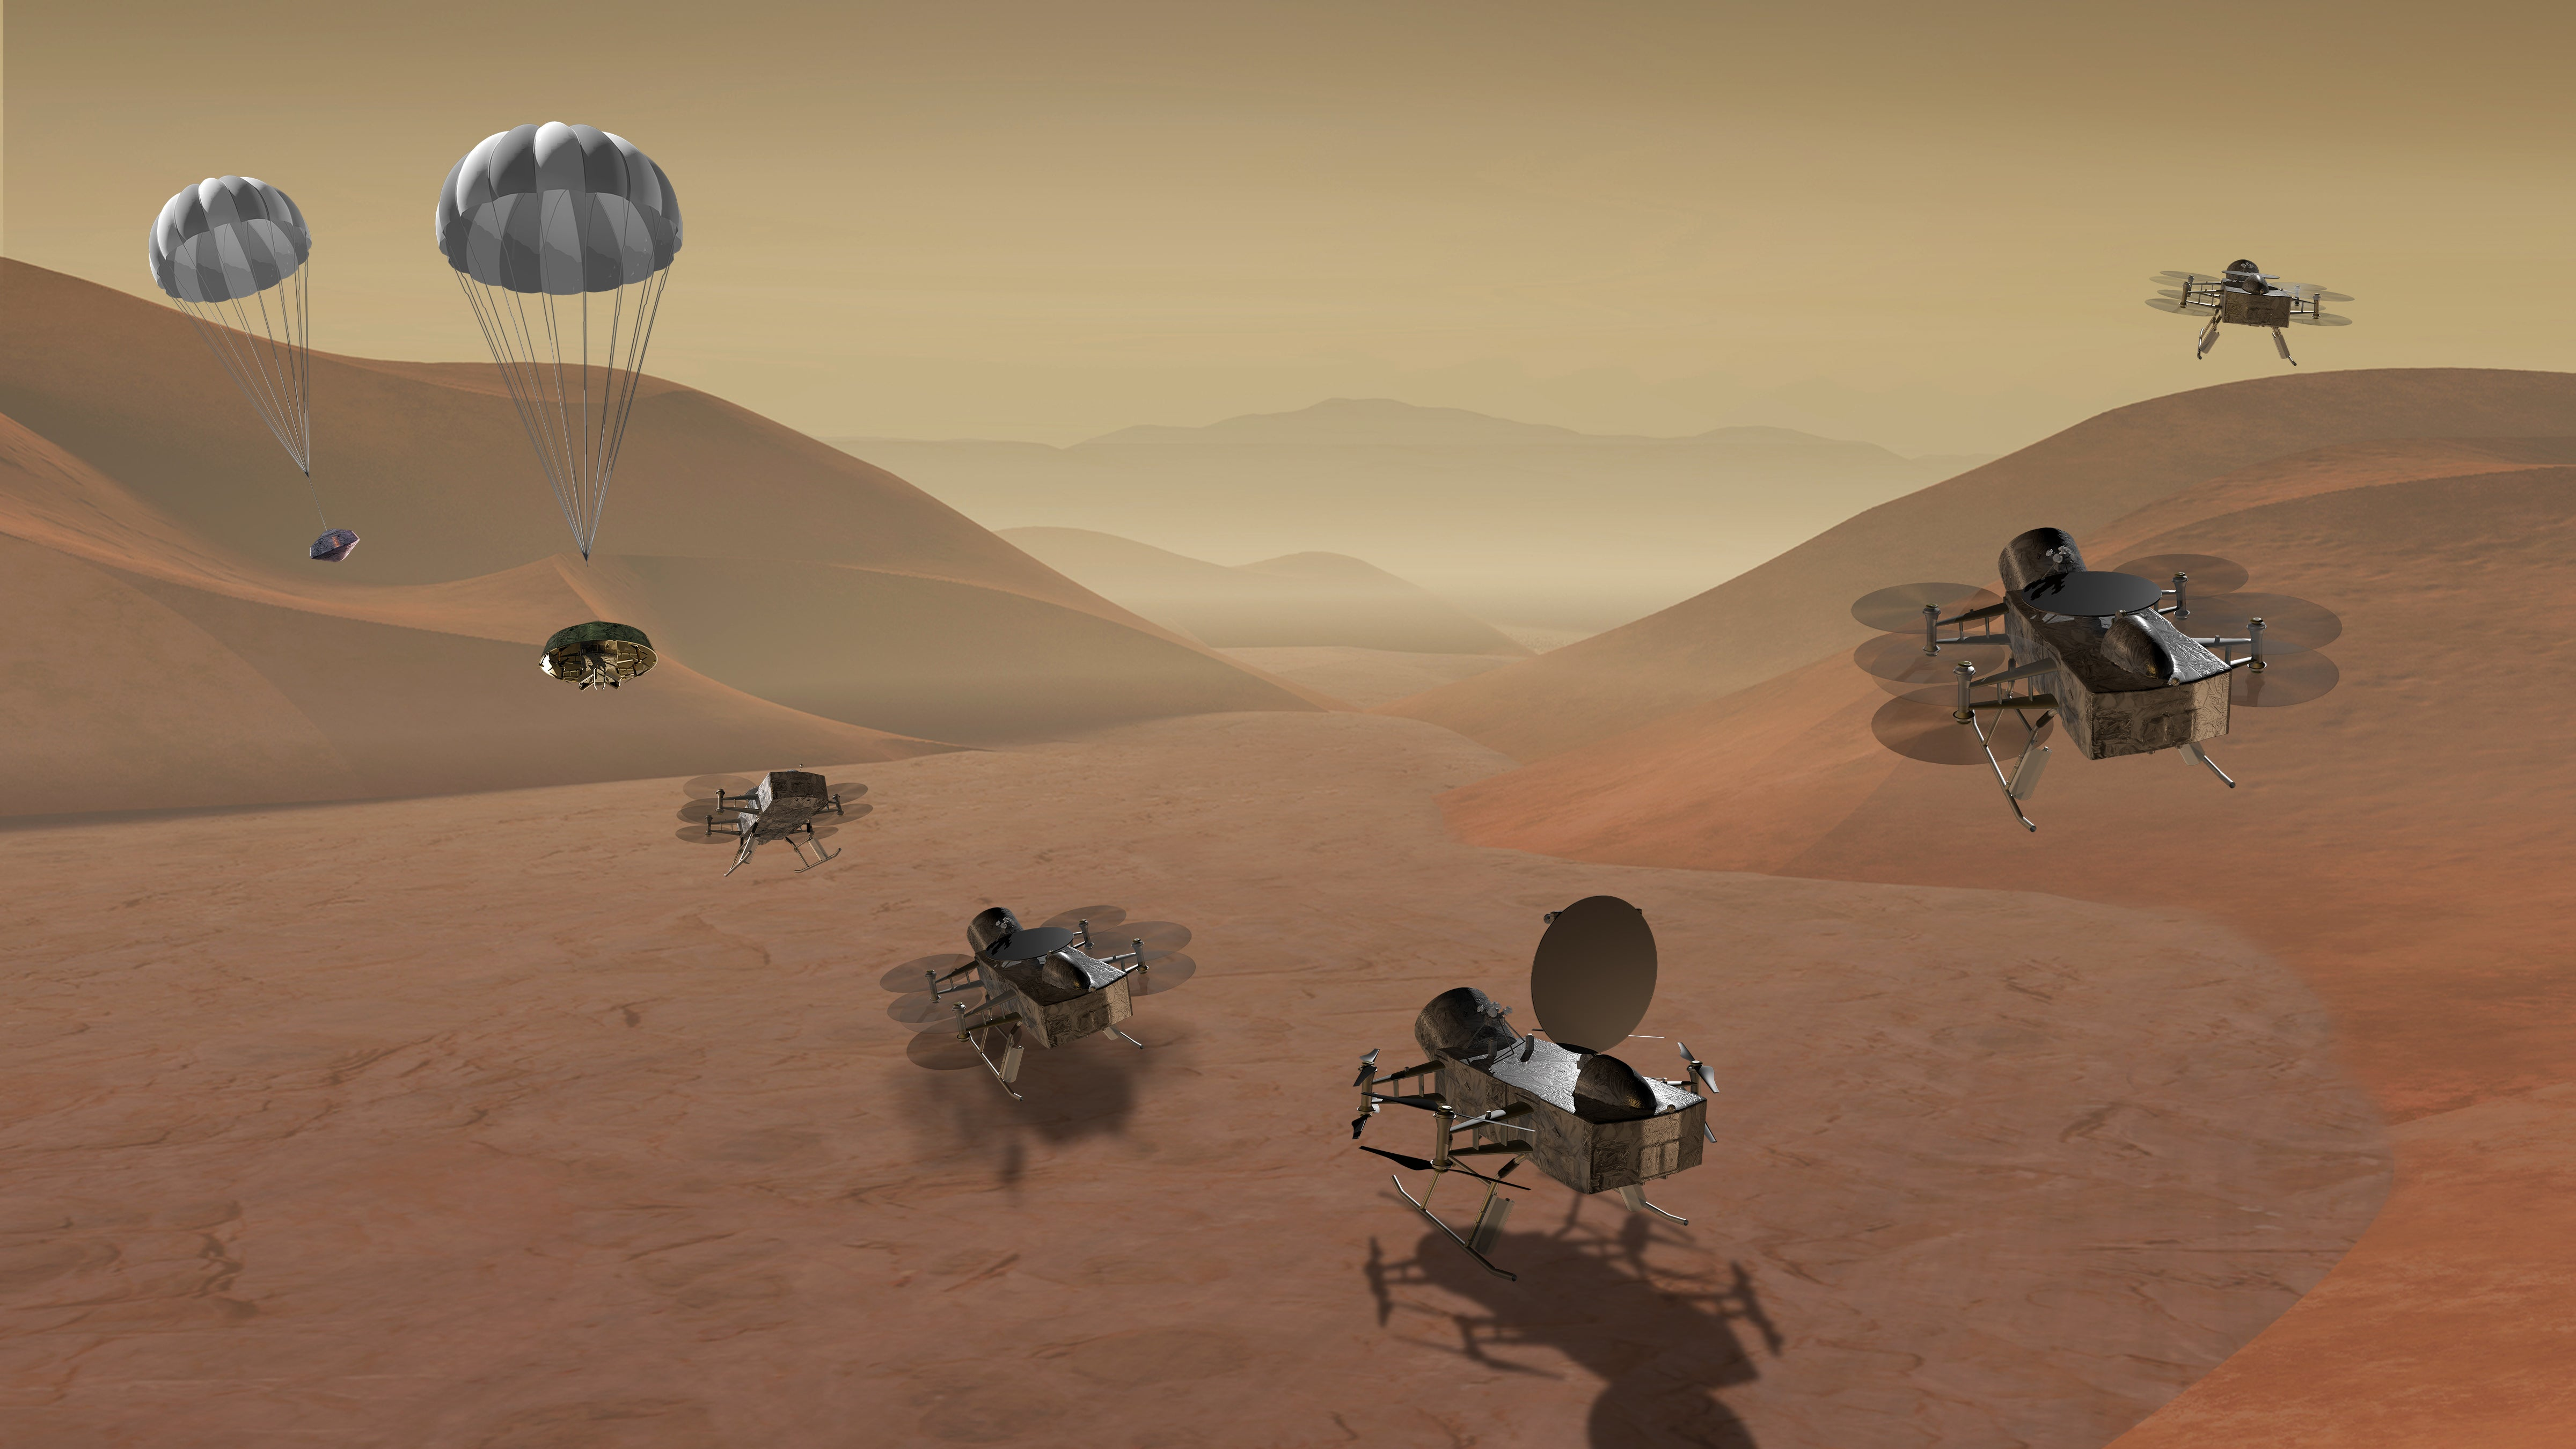 New NASA Mission Will Fly Titan's Frigid Skies to Search for Life's